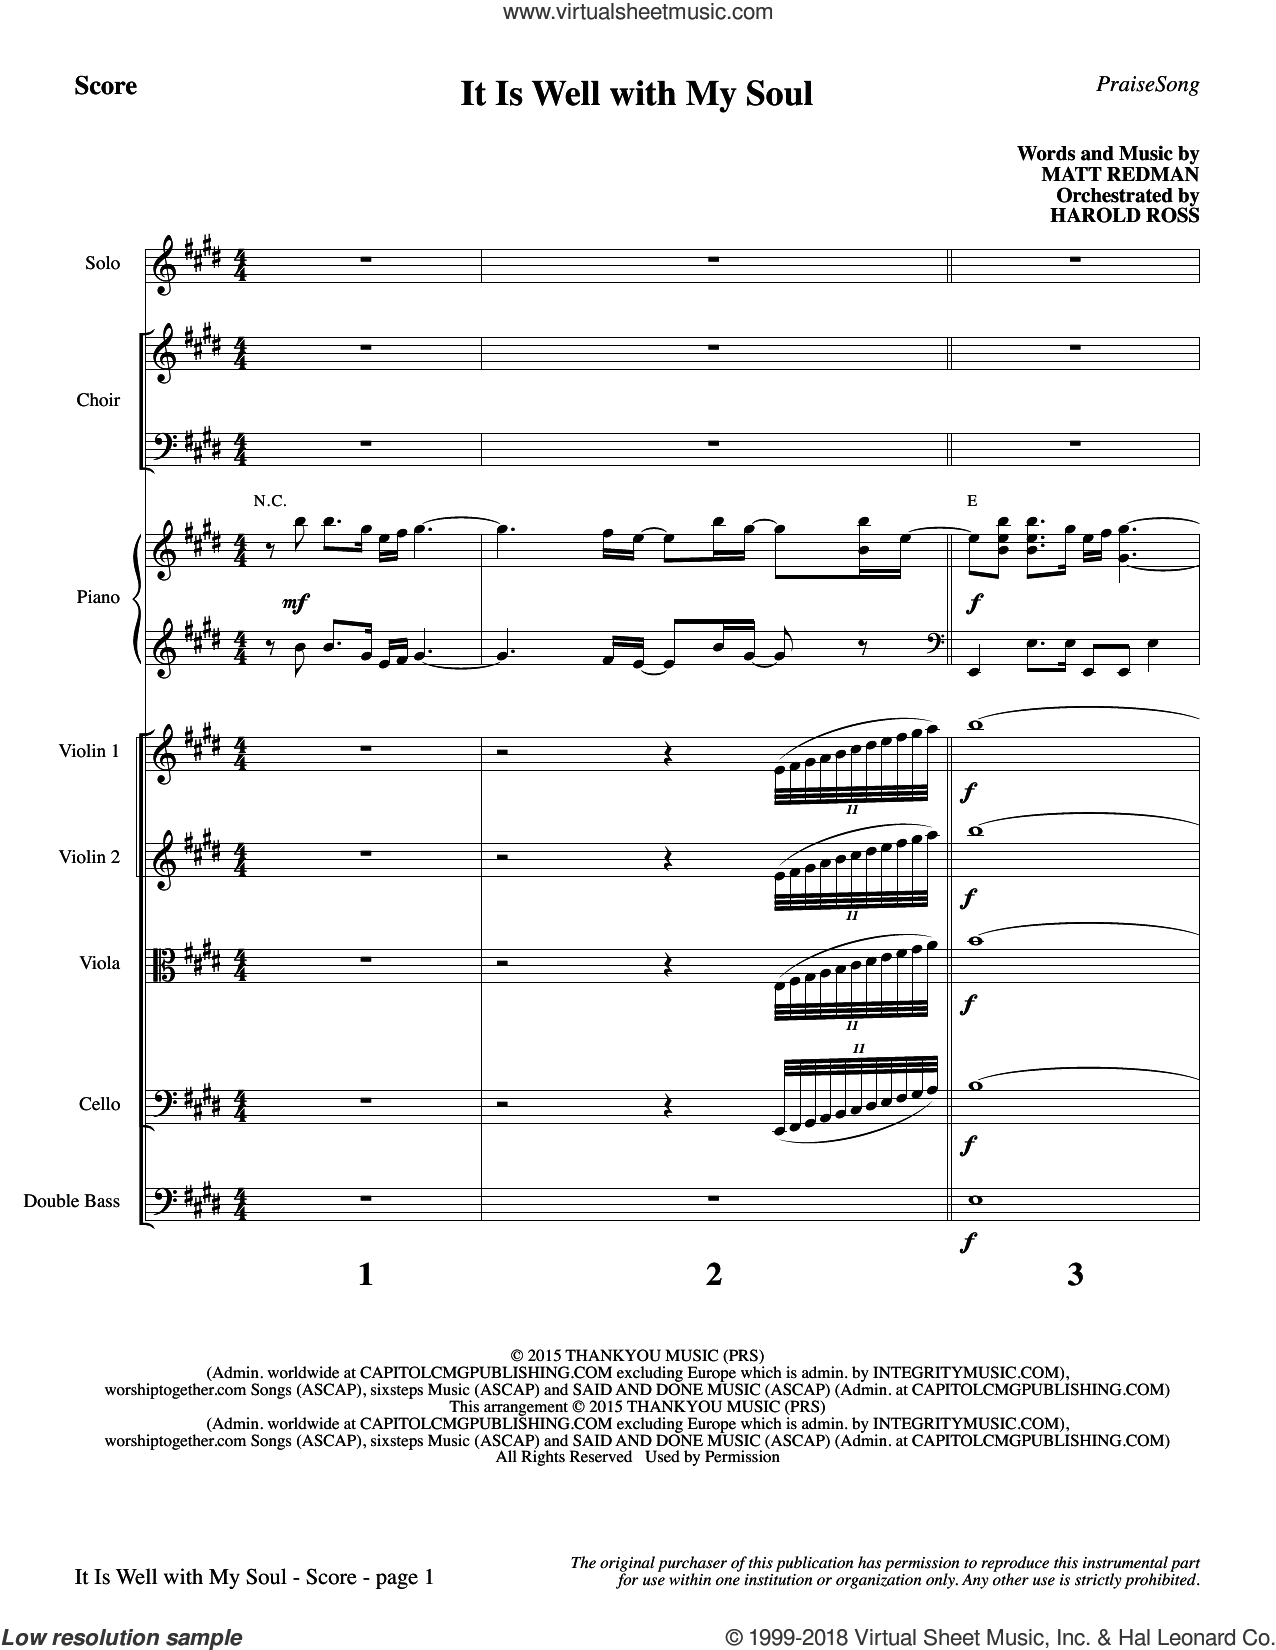 It Is Well with My Soul (COMPLETE) sheet music for orchestra/band by Matt Redman, Beth Redman, Harold Ross, Horatio G. Spafford and Philip P. Bliss, intermediate skill level